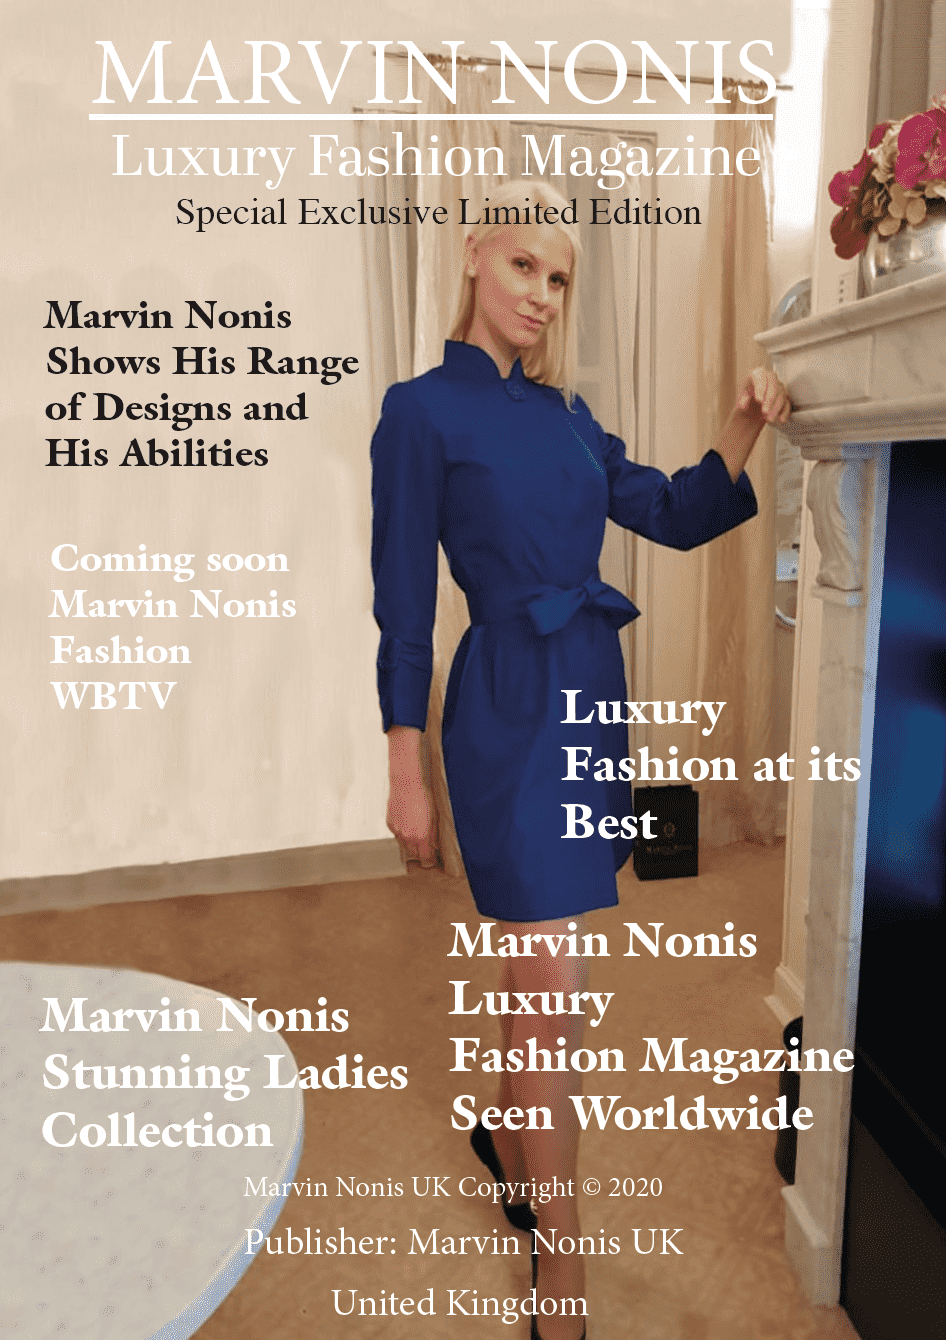 Marvin Nonis UK Luxury Fashion Magazine - Fashion Show 2